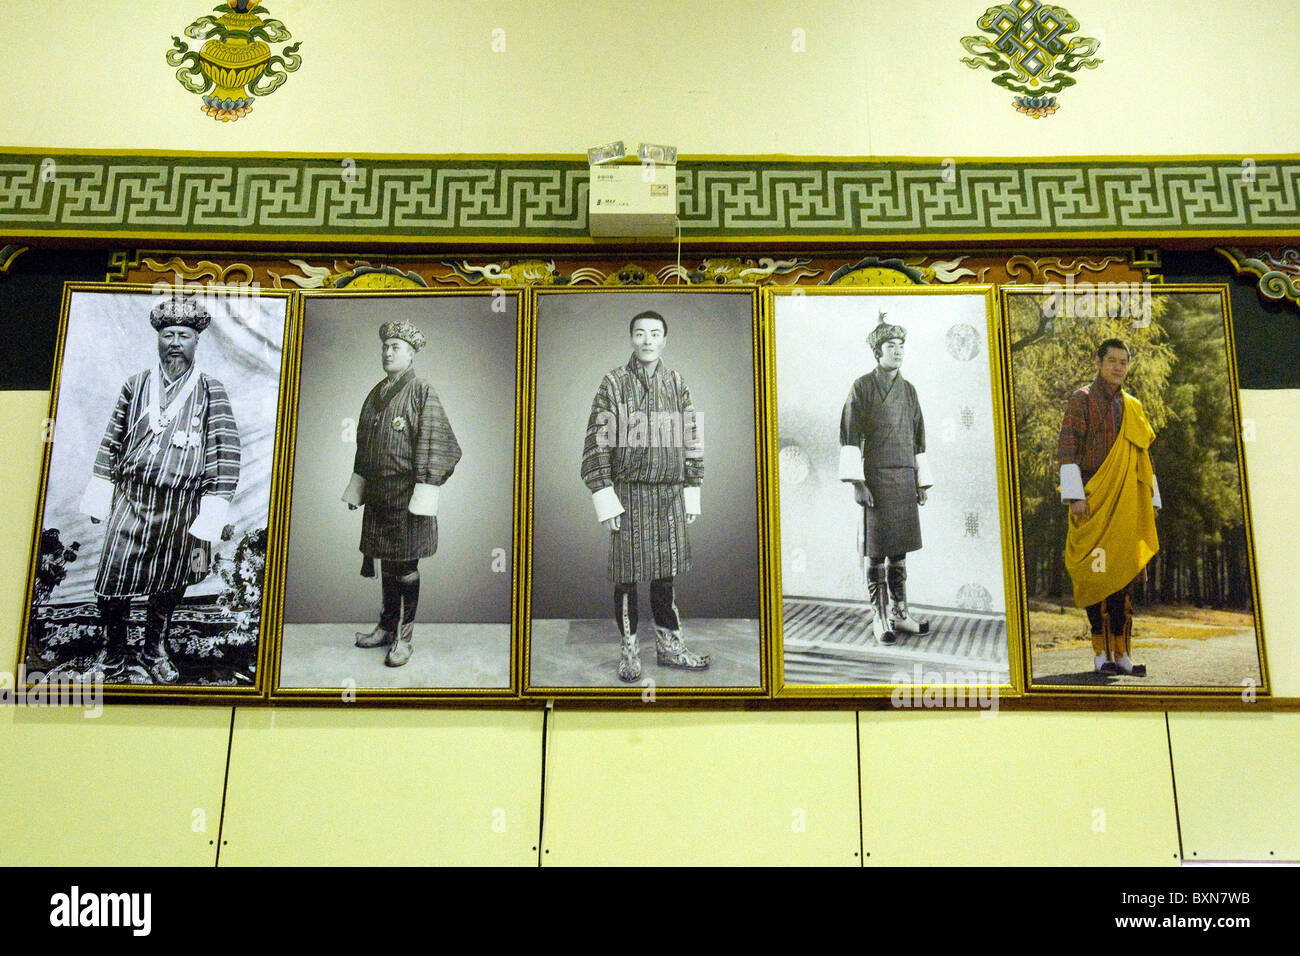 On an airport wall the five kings of Bhutan--the current, far right, His Majesty Jigme Khesar Mangyel Wangchuck - Stock Image